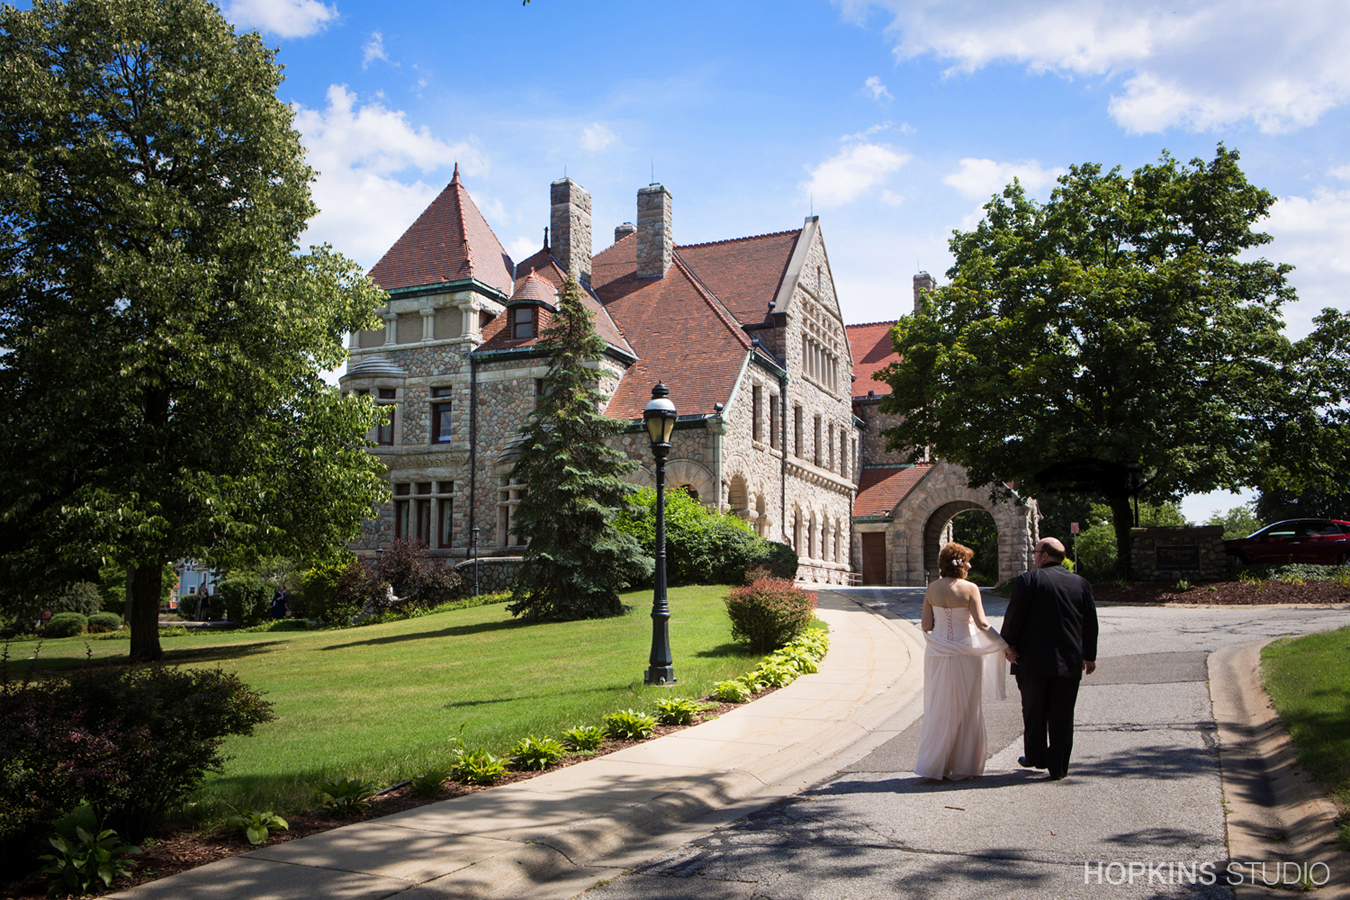 wedding-photography-Tippicanoe-Place-Southbend-Indiana-weddings_60.jpg